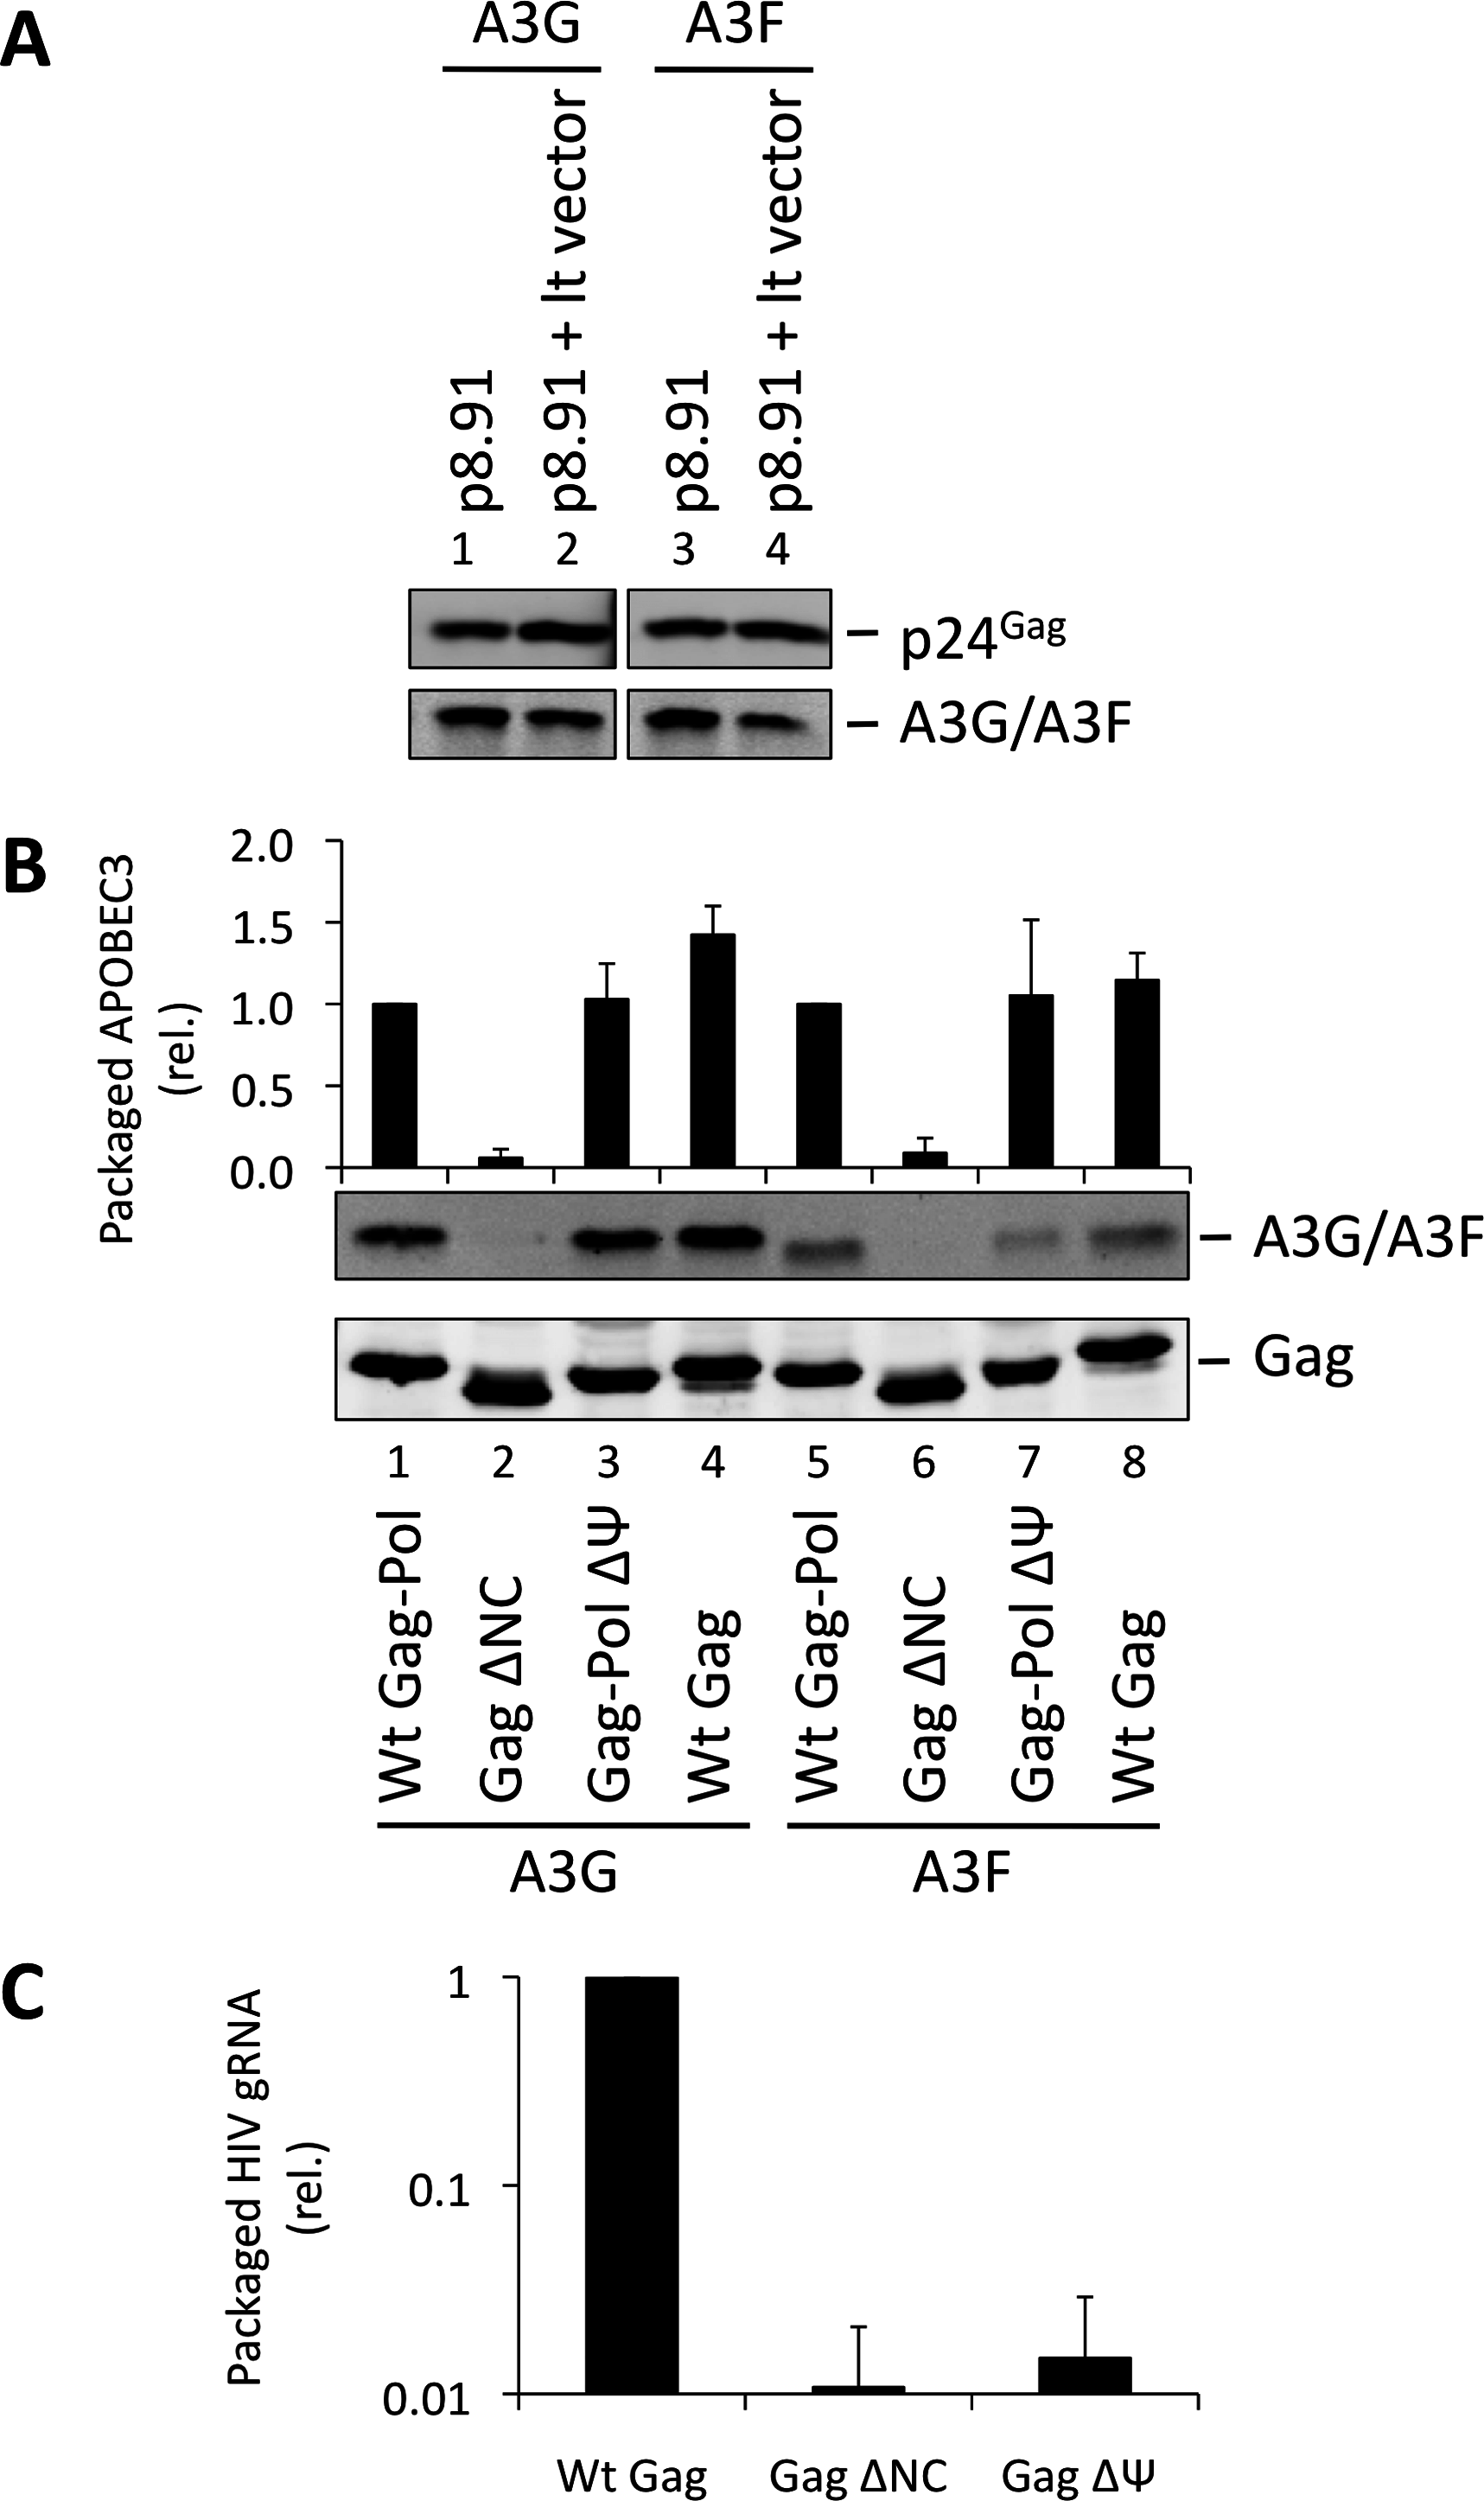 HIV-1 particles lacking genomic RNA package A3G and A3F. (A)